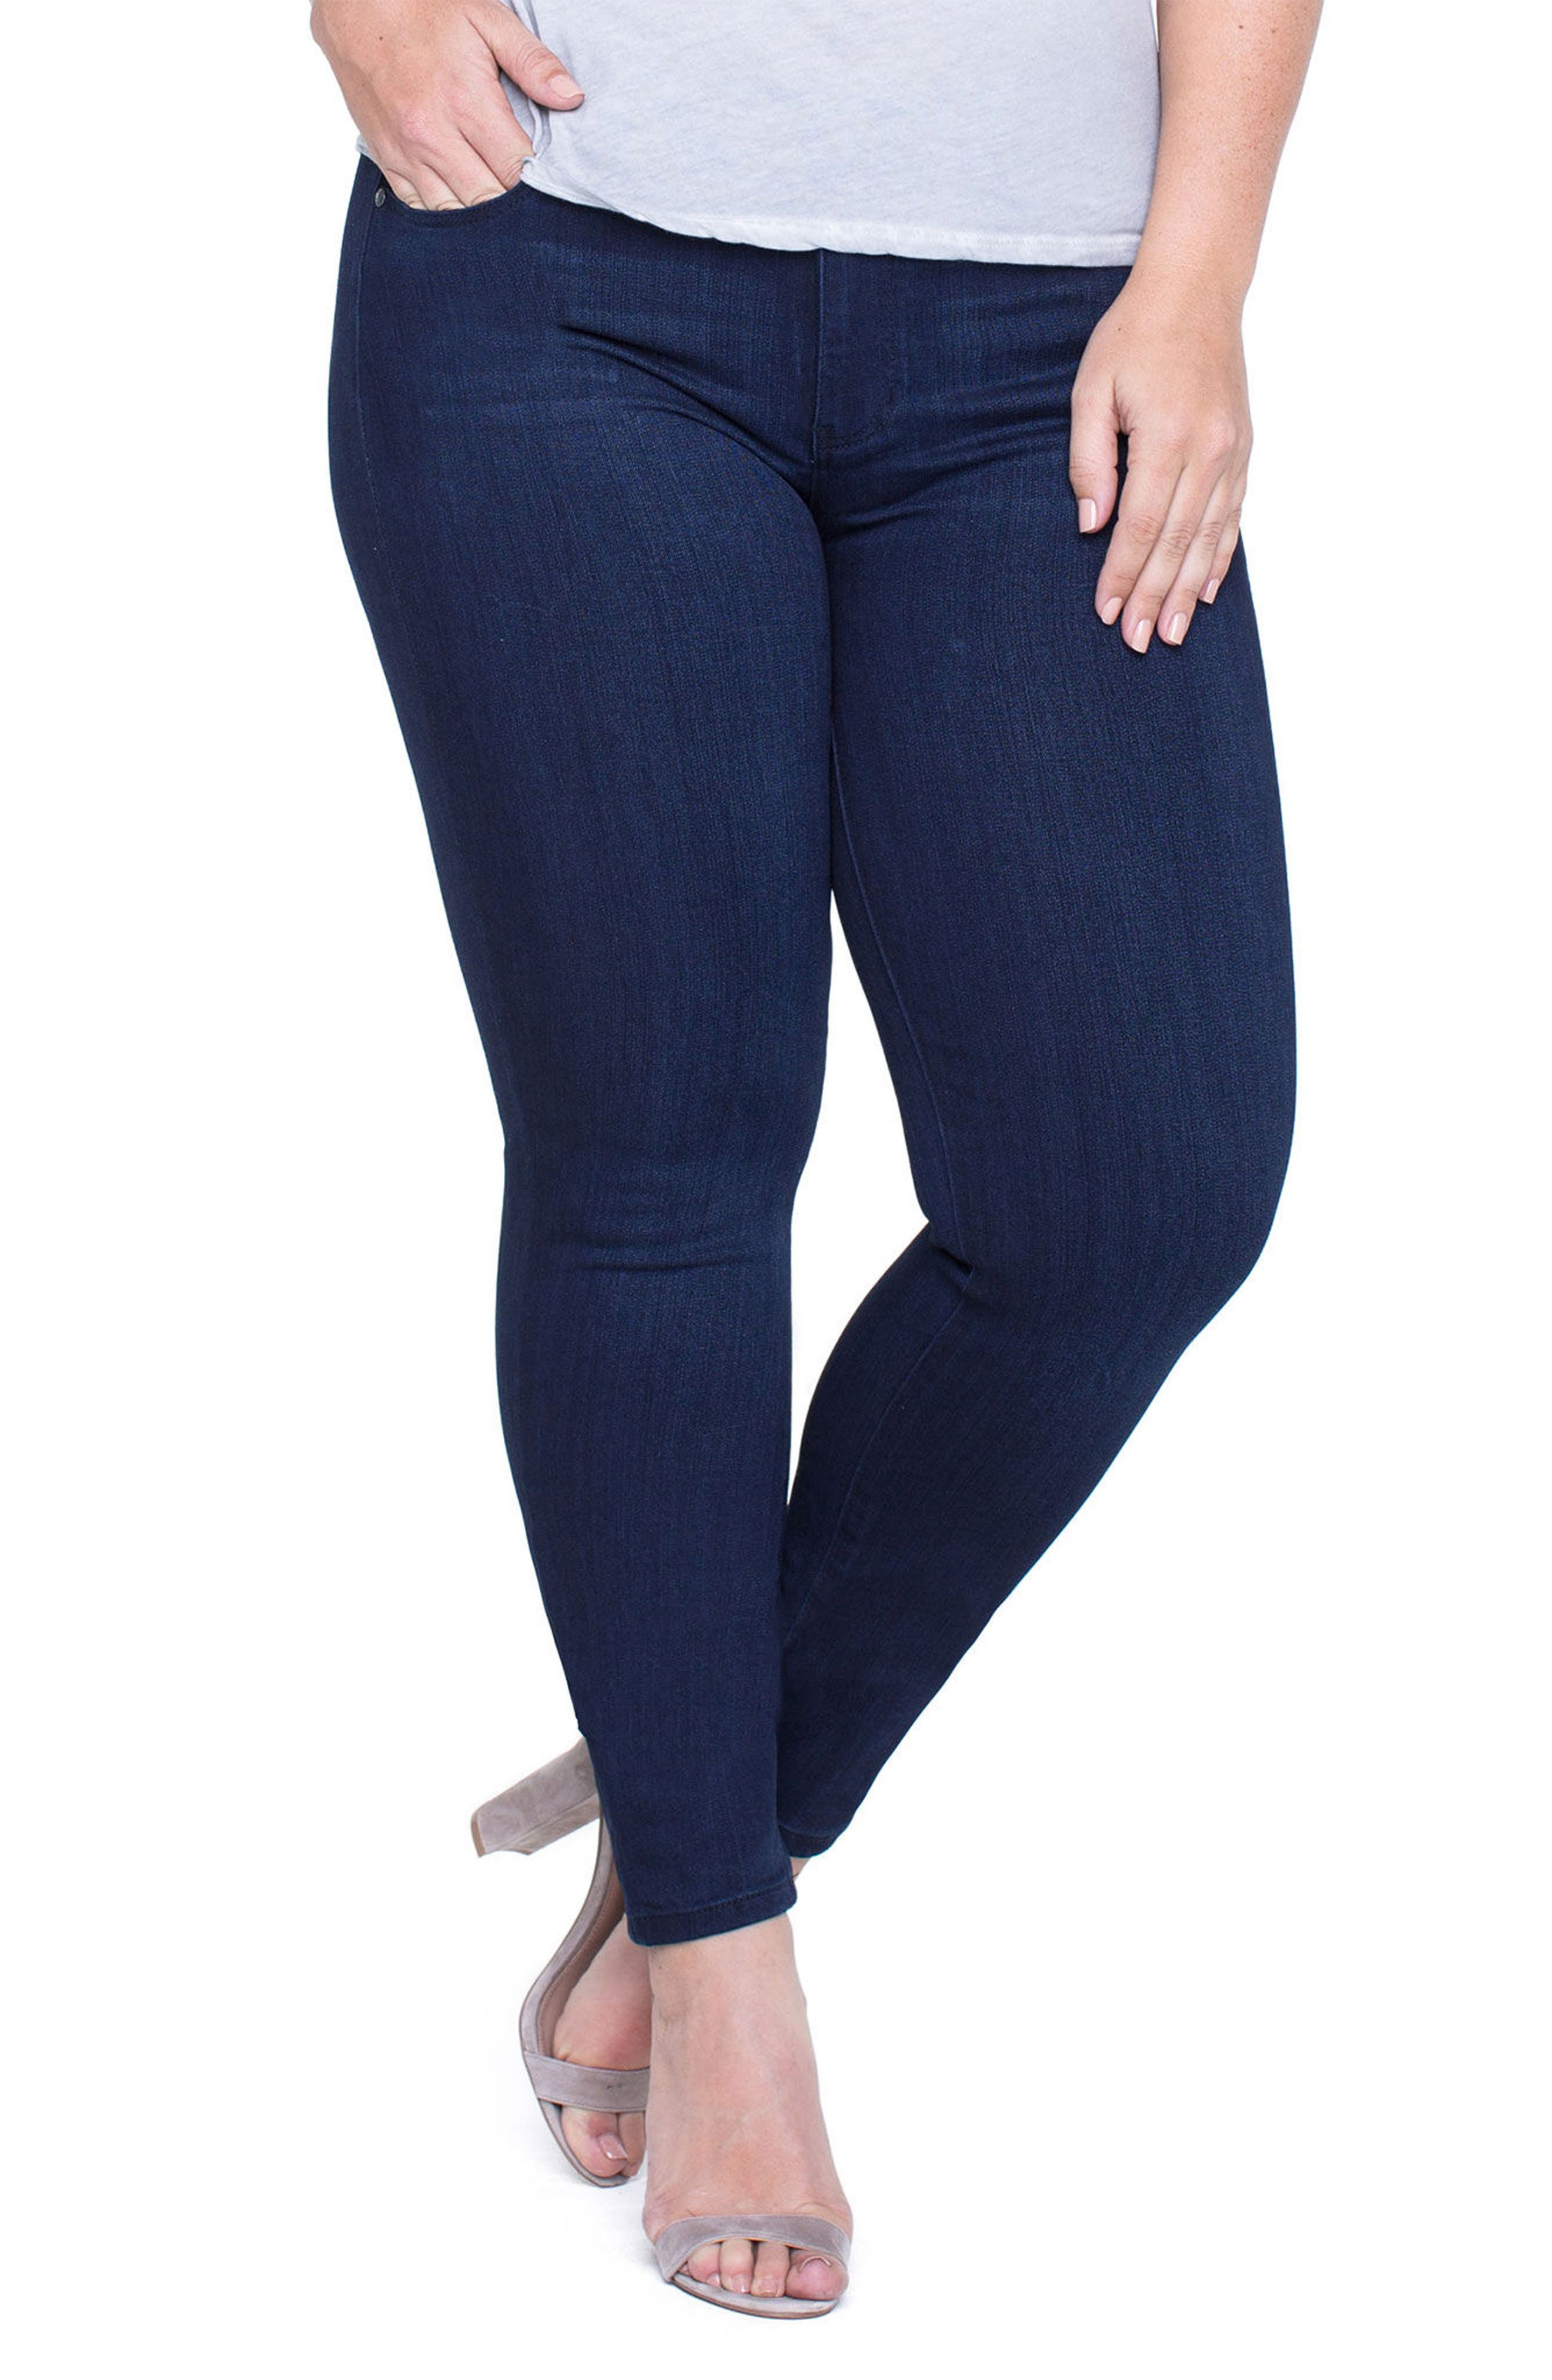 Main Image - Liverpool Jeans Company Abby Stretch Skinny Jeans (Plus Size)